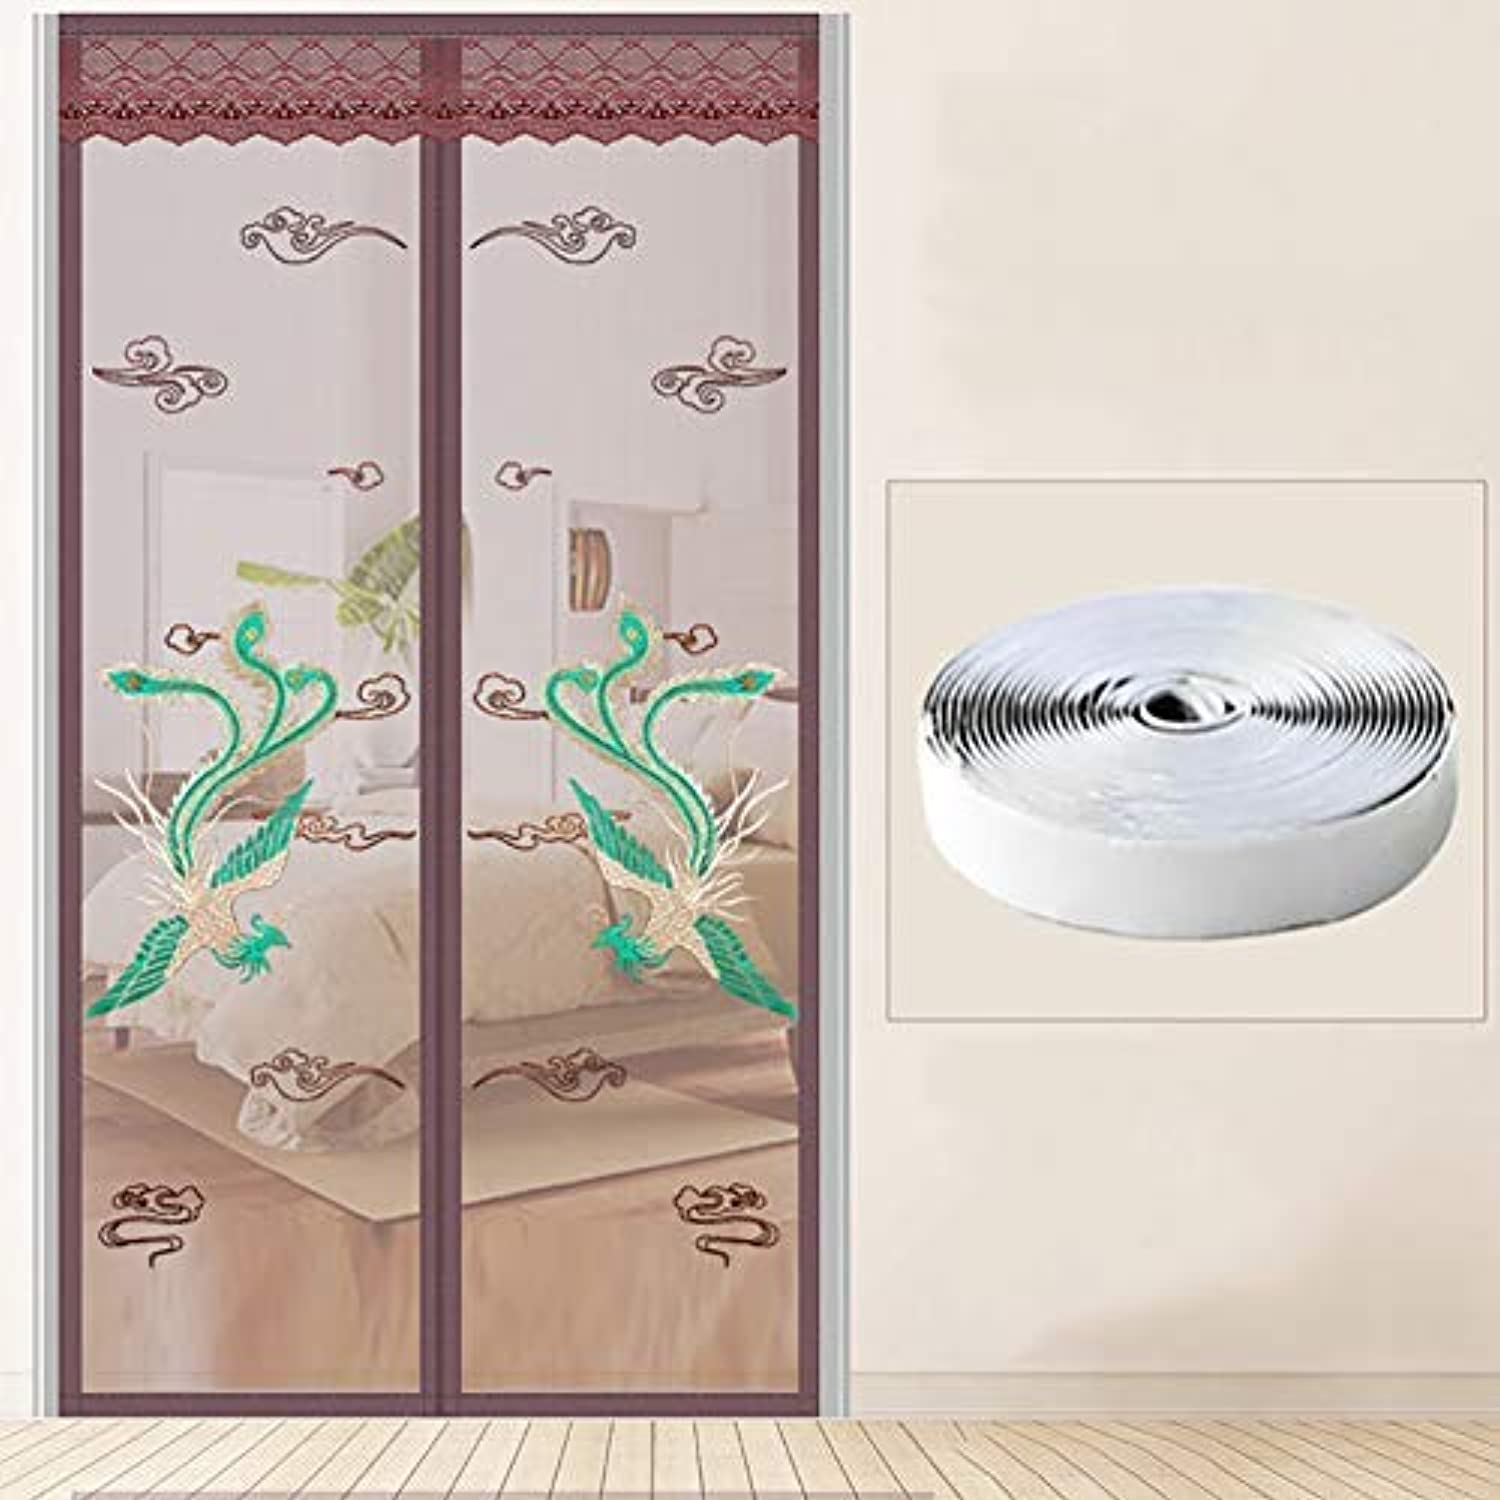 DYR Magnetic Fly Screen Door Phoenix, Mosquito net Fly mesh Curtain with Magic Tape Anti pest Hands FreeBrown 90x210cm 35.4x82.6inch